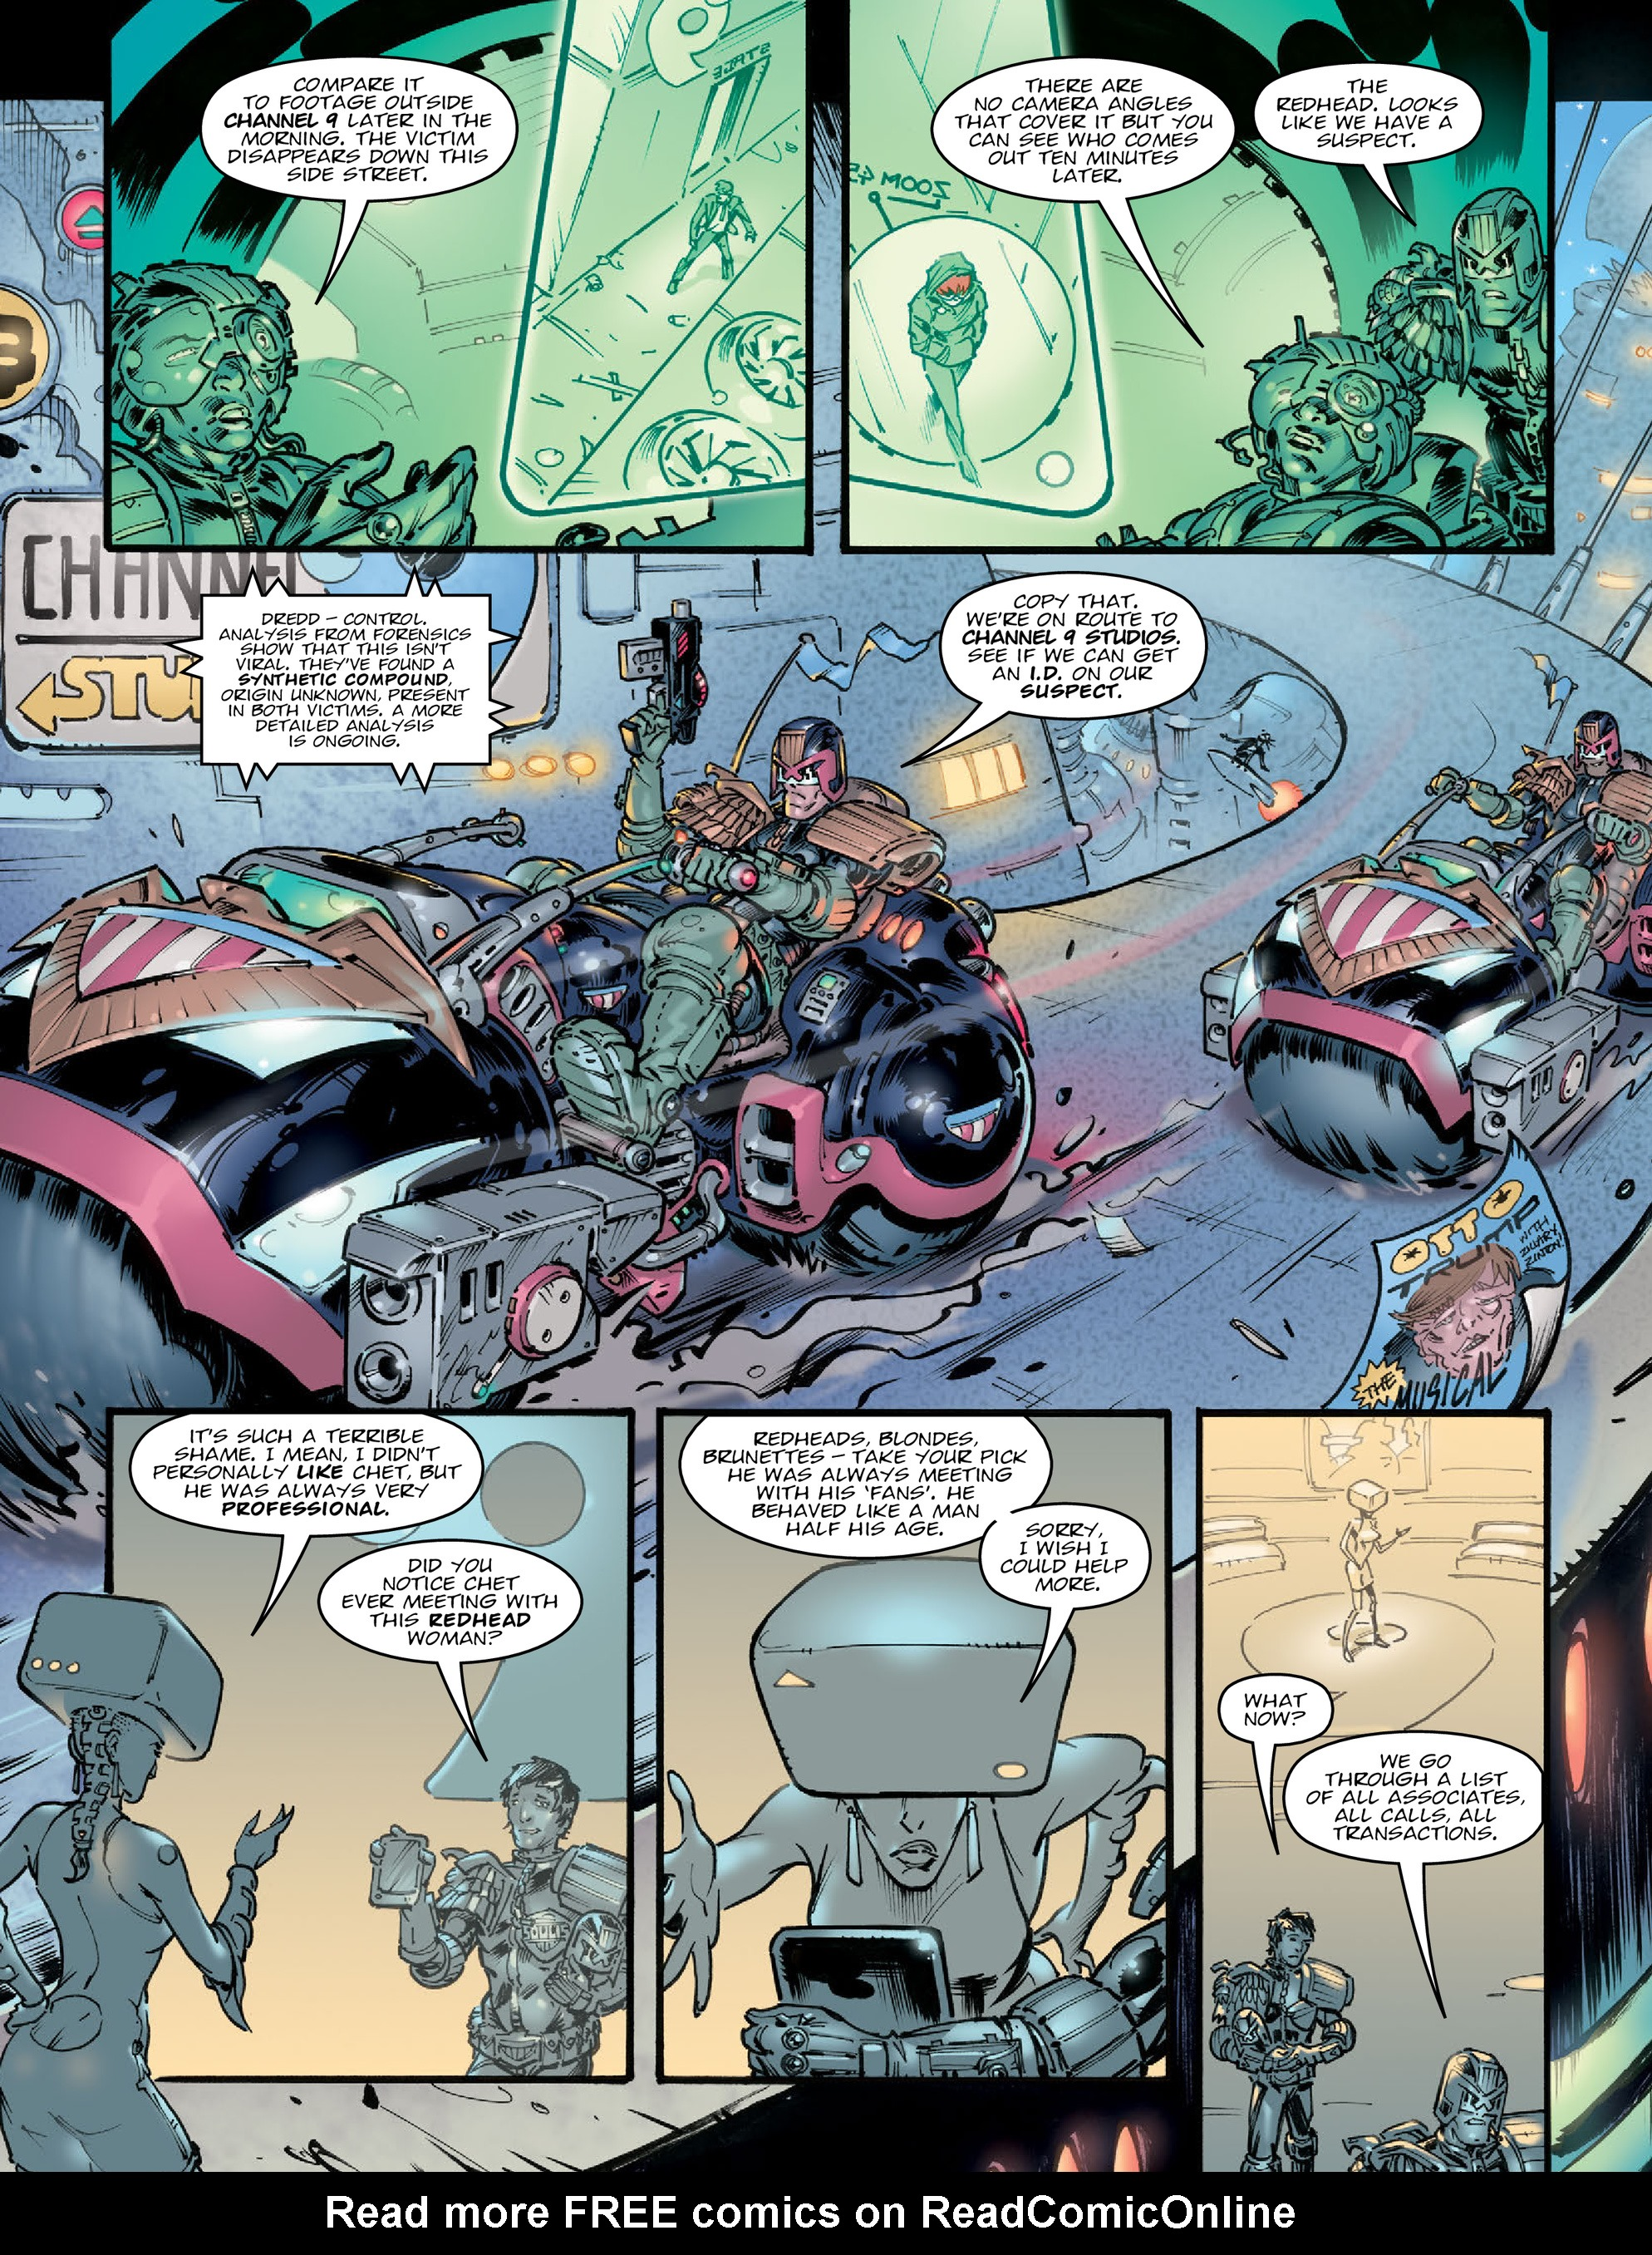 Read online 2000 AD comic -  Issue #2020 - 6